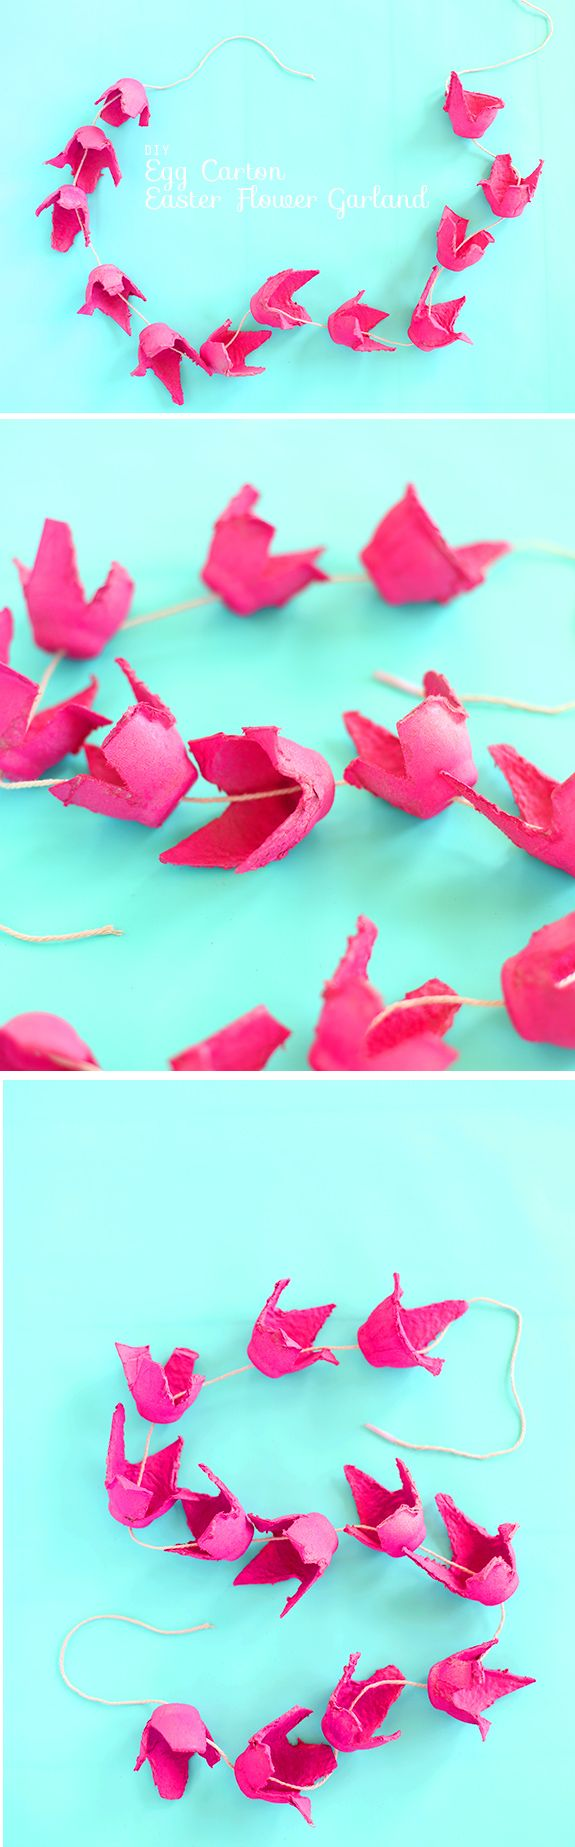 Egg carton flower garland easy to make and beautiful Egg carton flowers ideas